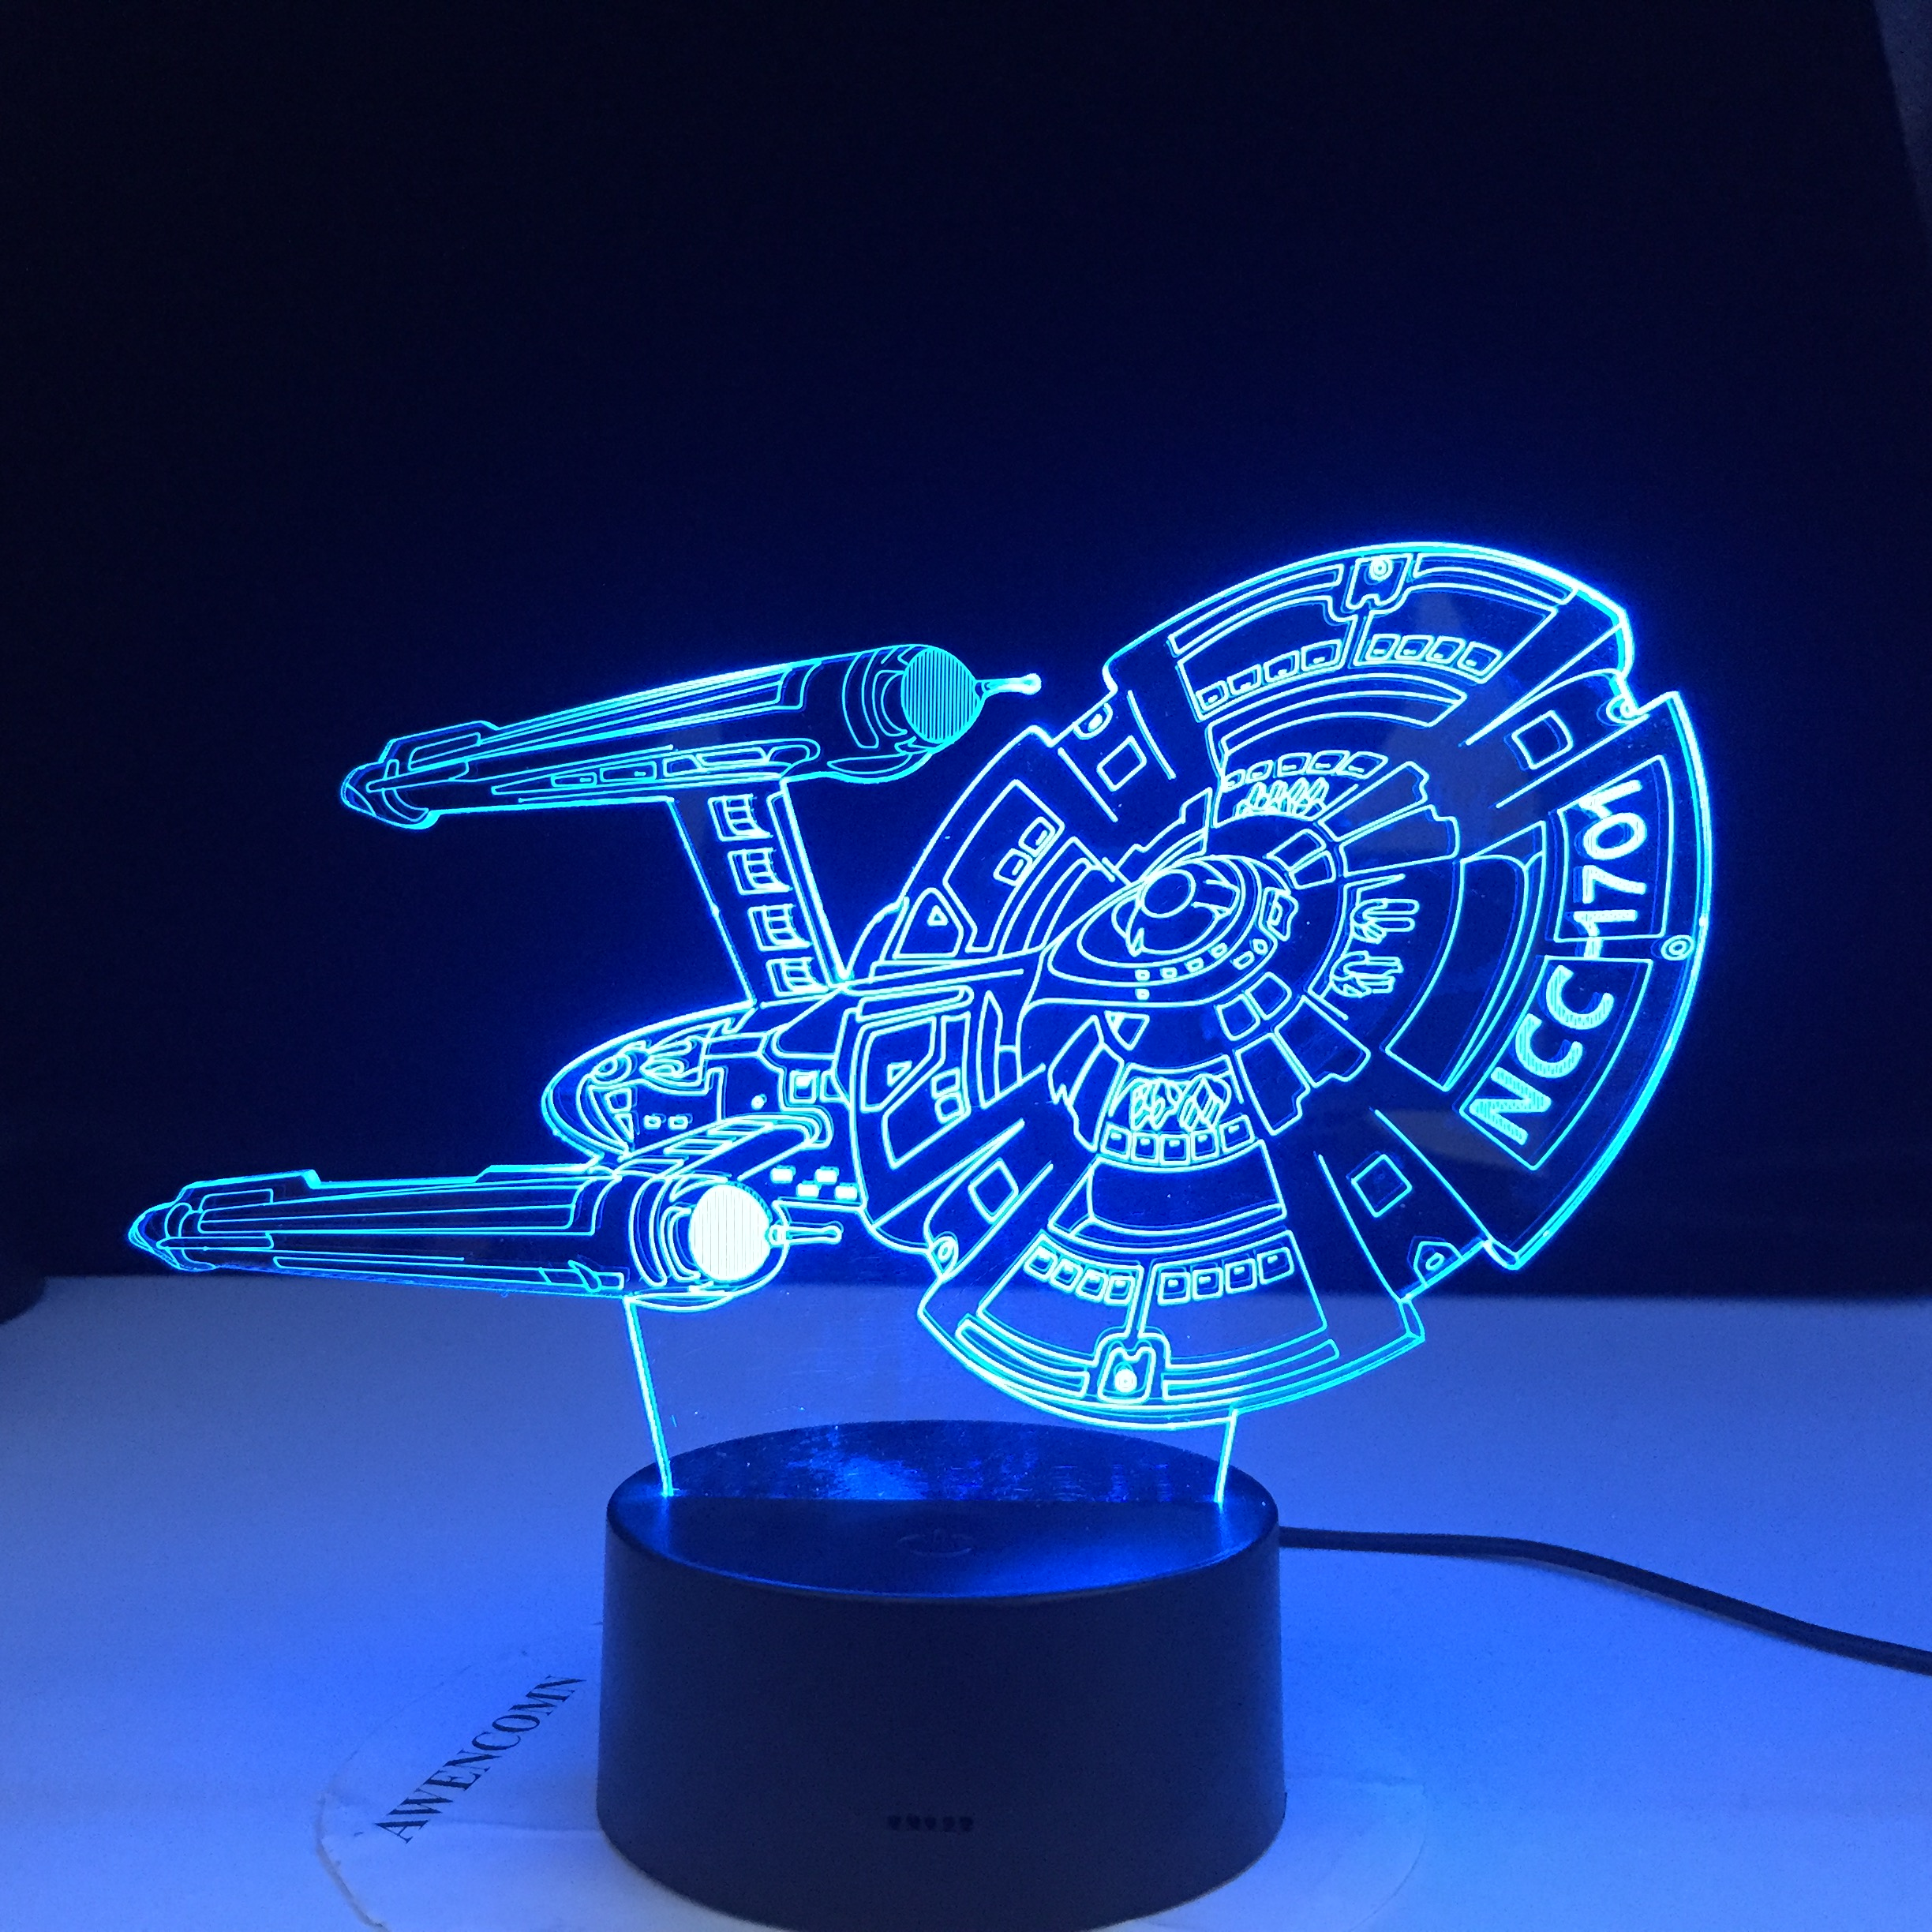 Star Wars Starship <font><b>NCC</b></font> <font><b>1701</b></font> 3d LED Night Light for Child Bedroom Decor Color Changing Best Birthday Gift for Kids Night Lamp image